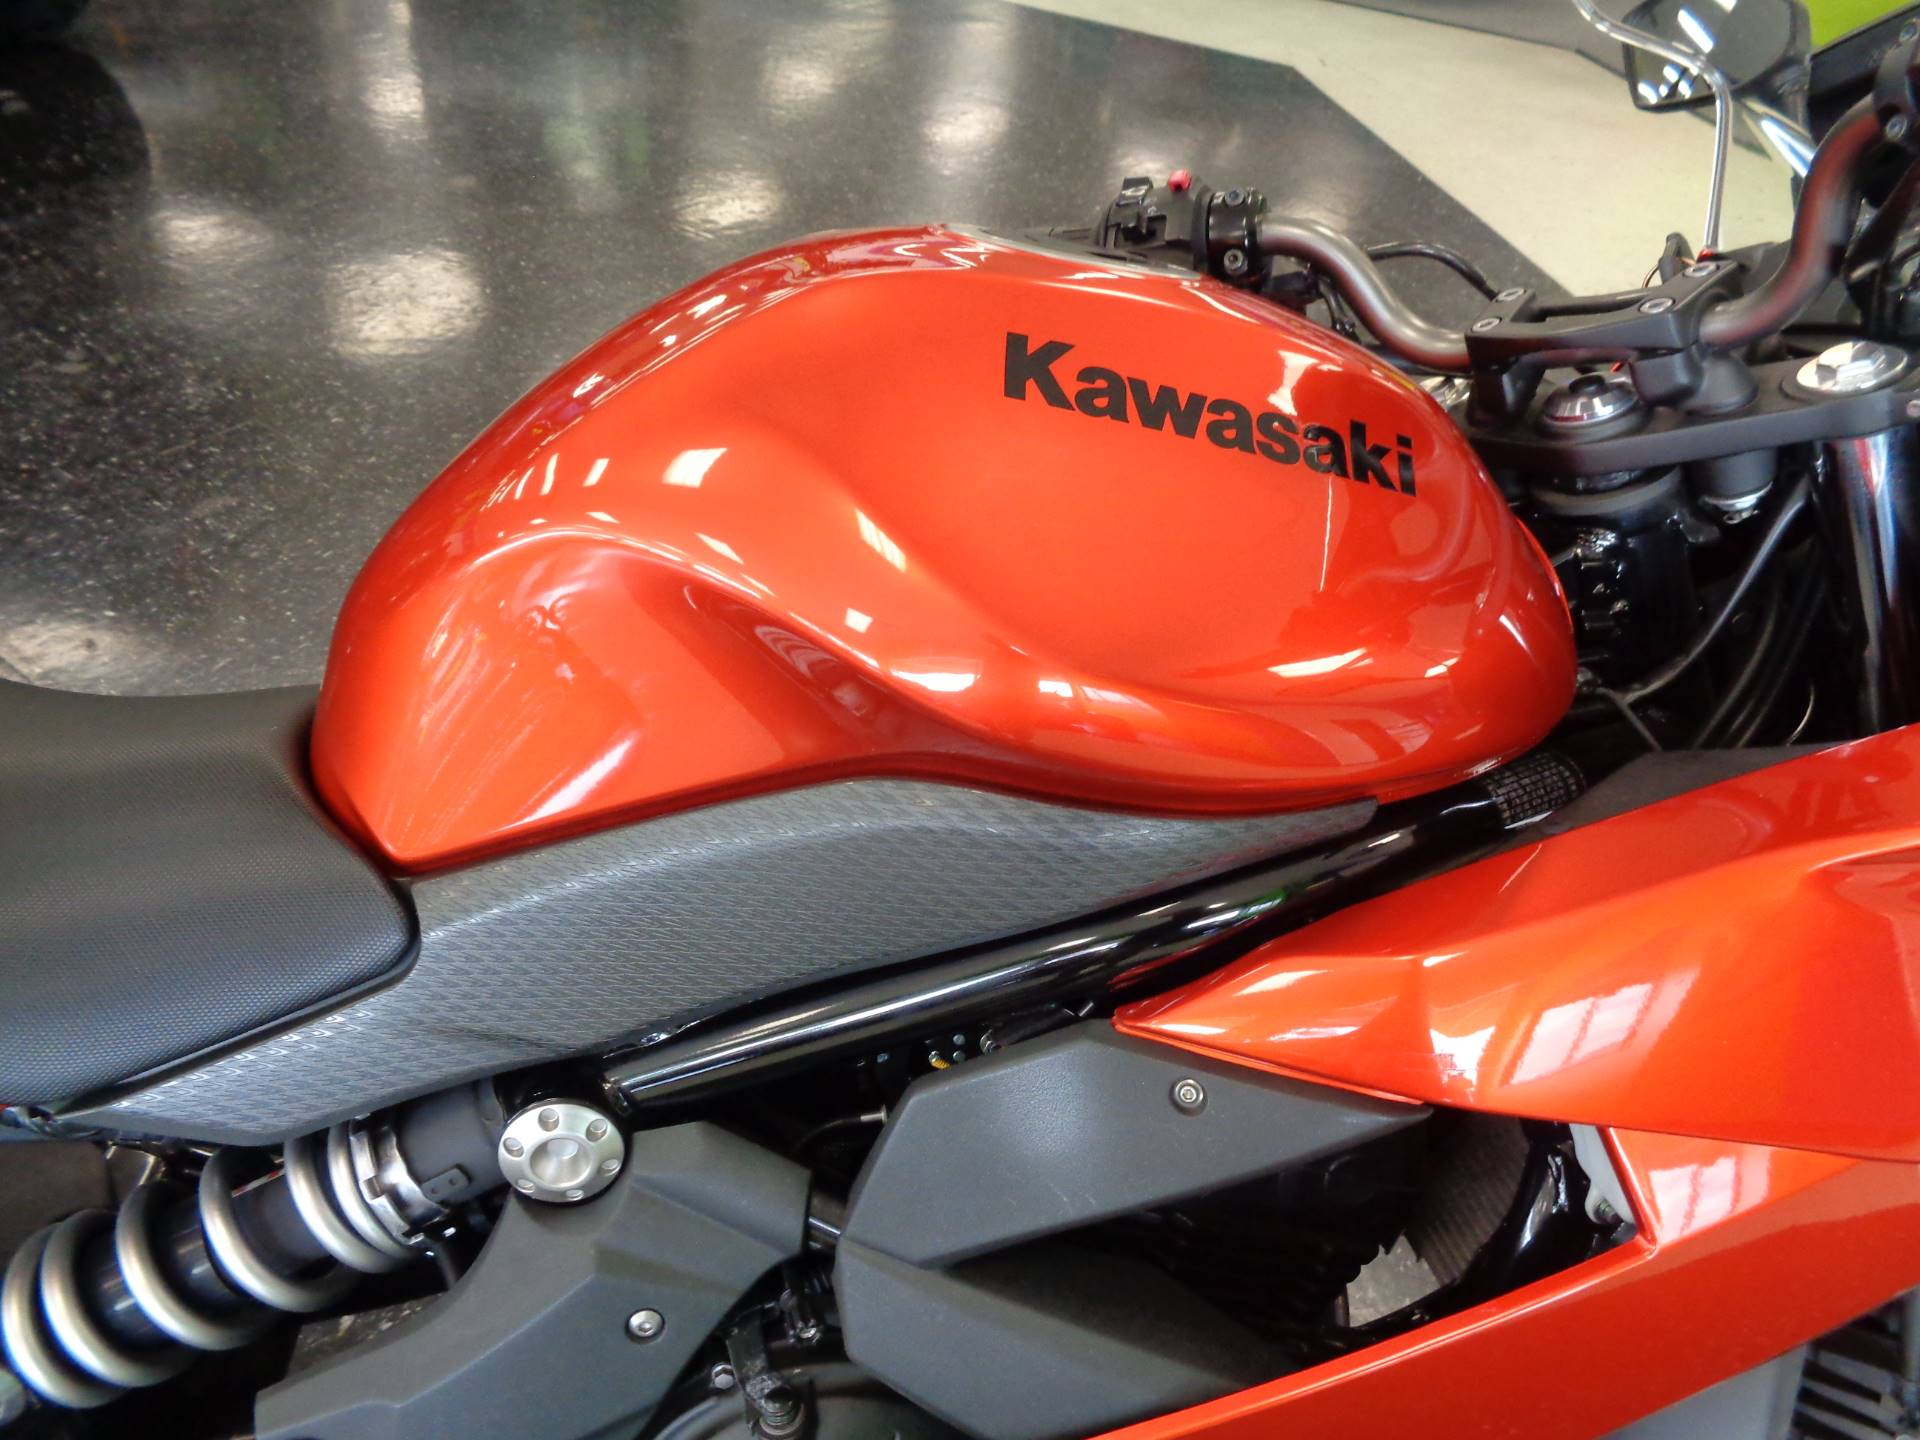 2011 Kawasaki Ninja® 650R in Broken Arrow, Oklahoma - Photo 3